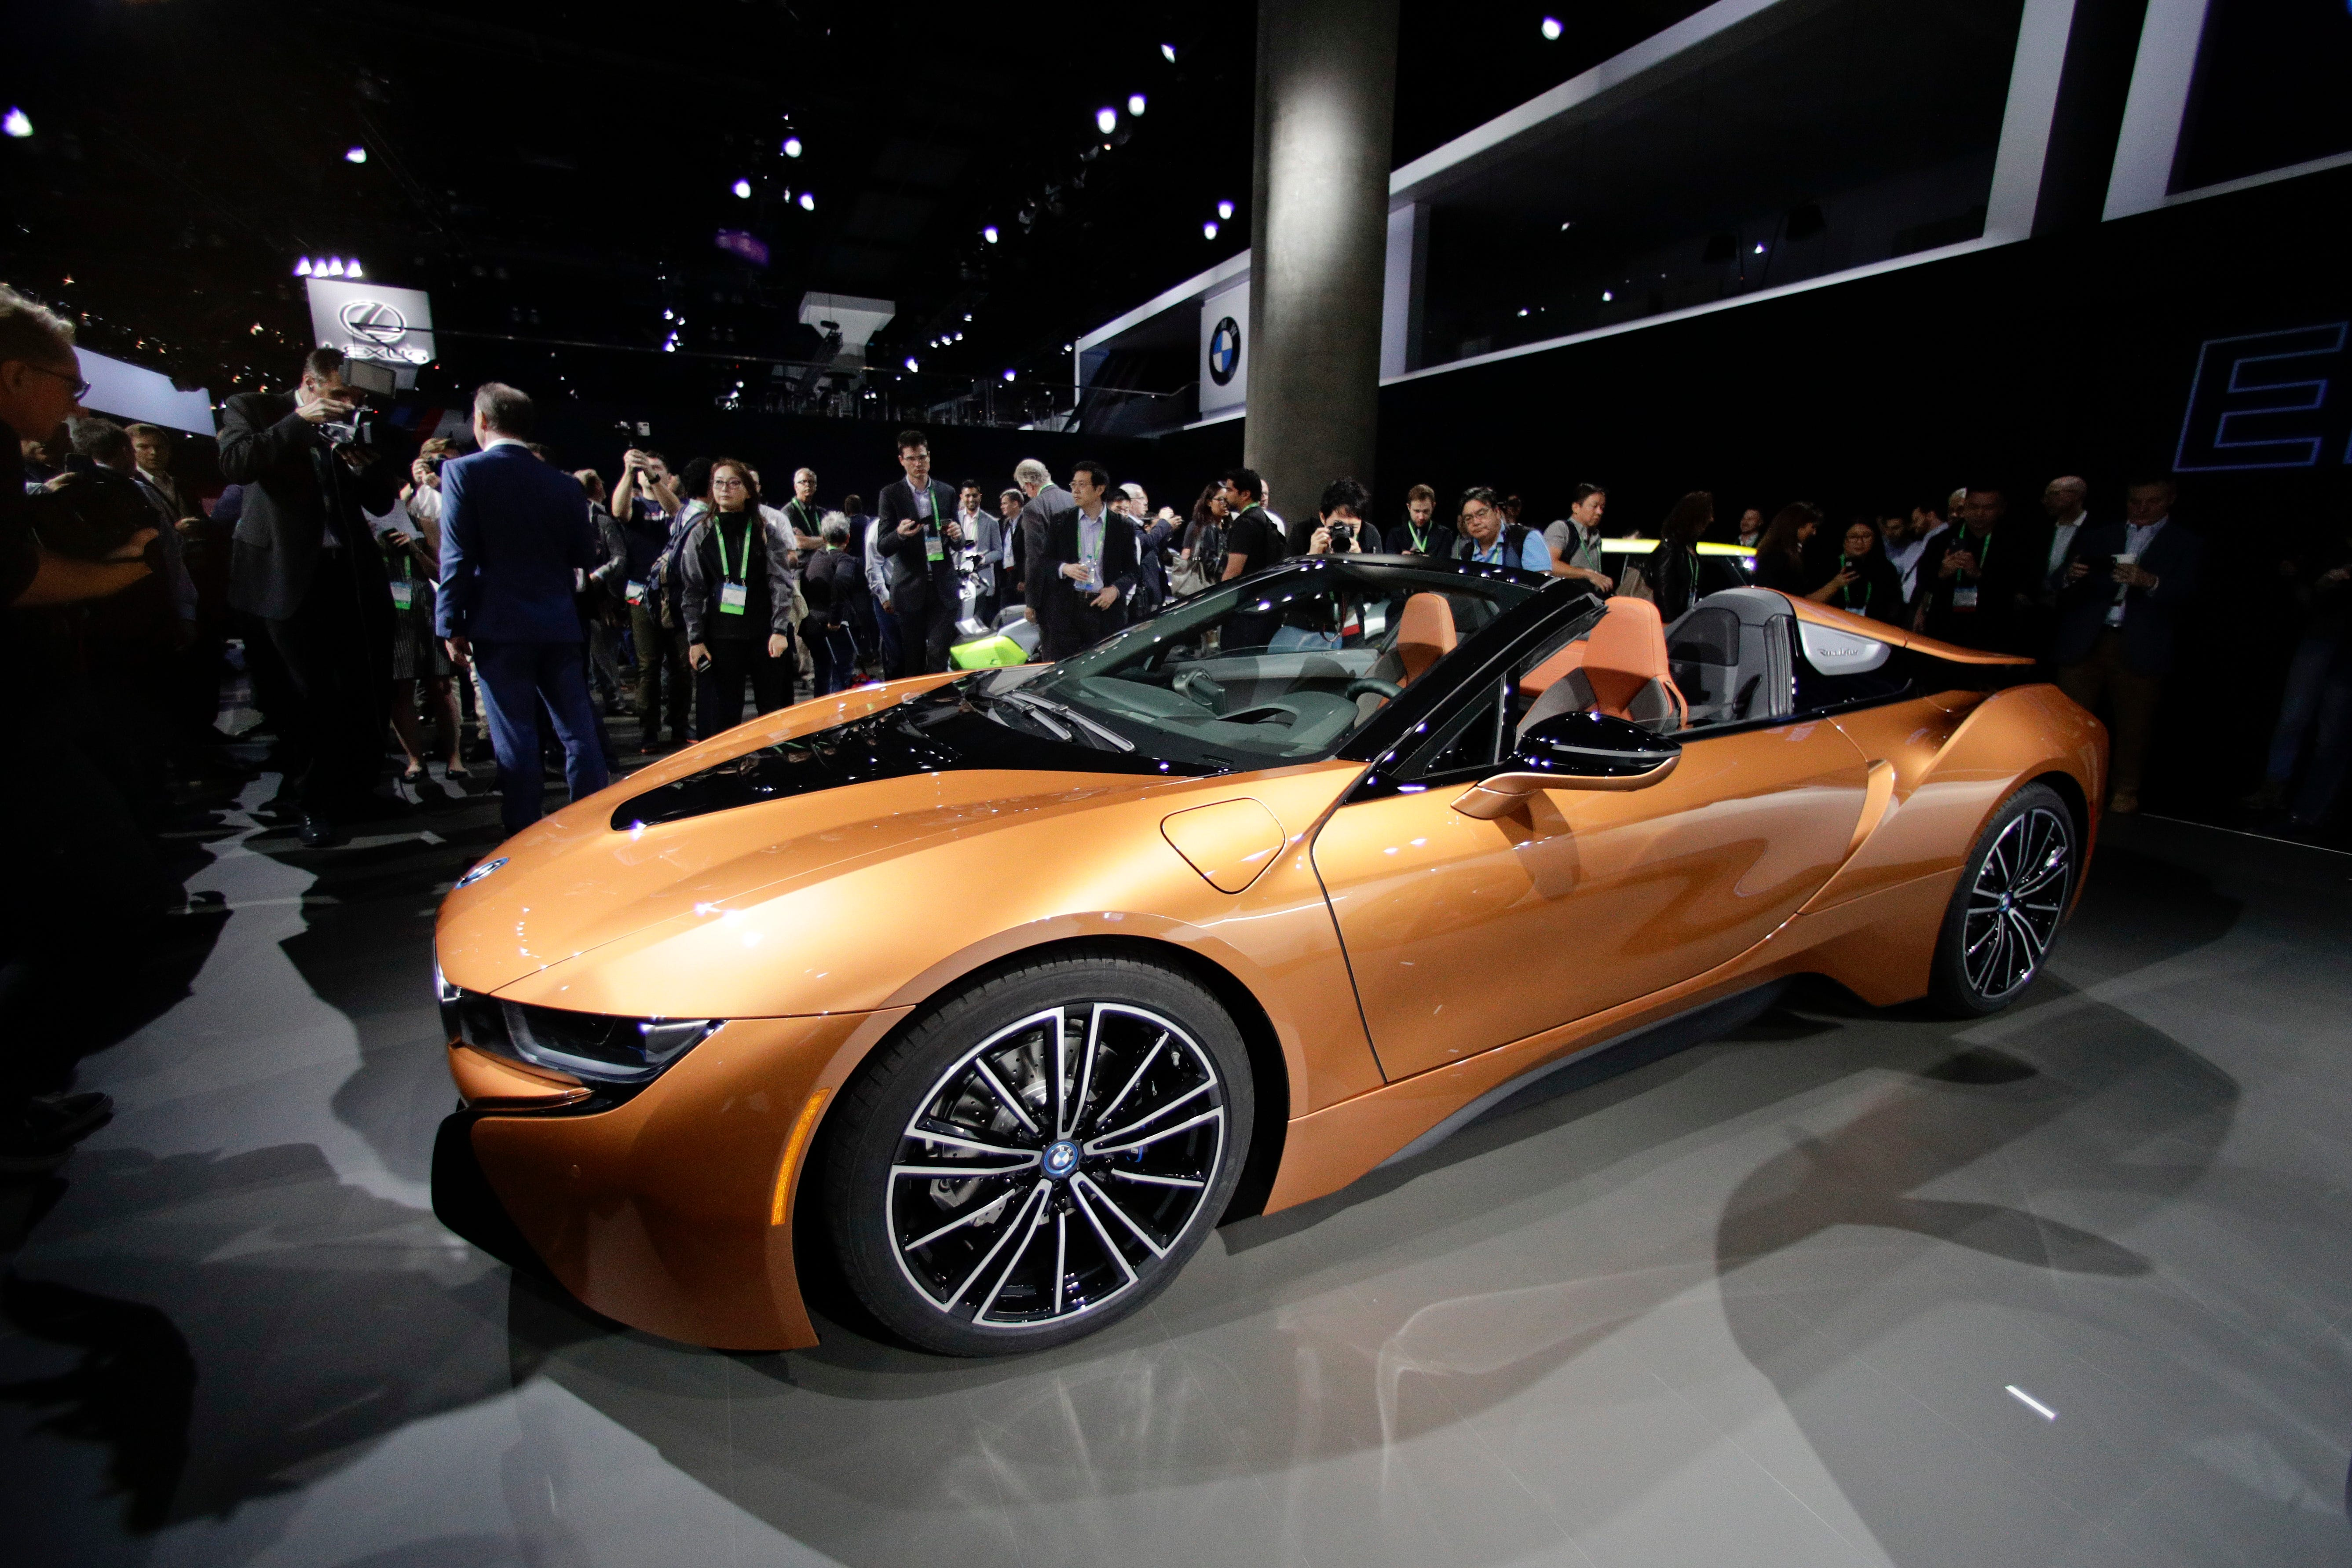 BMW i8 Roadster: BMW dropped a stunning eight new models